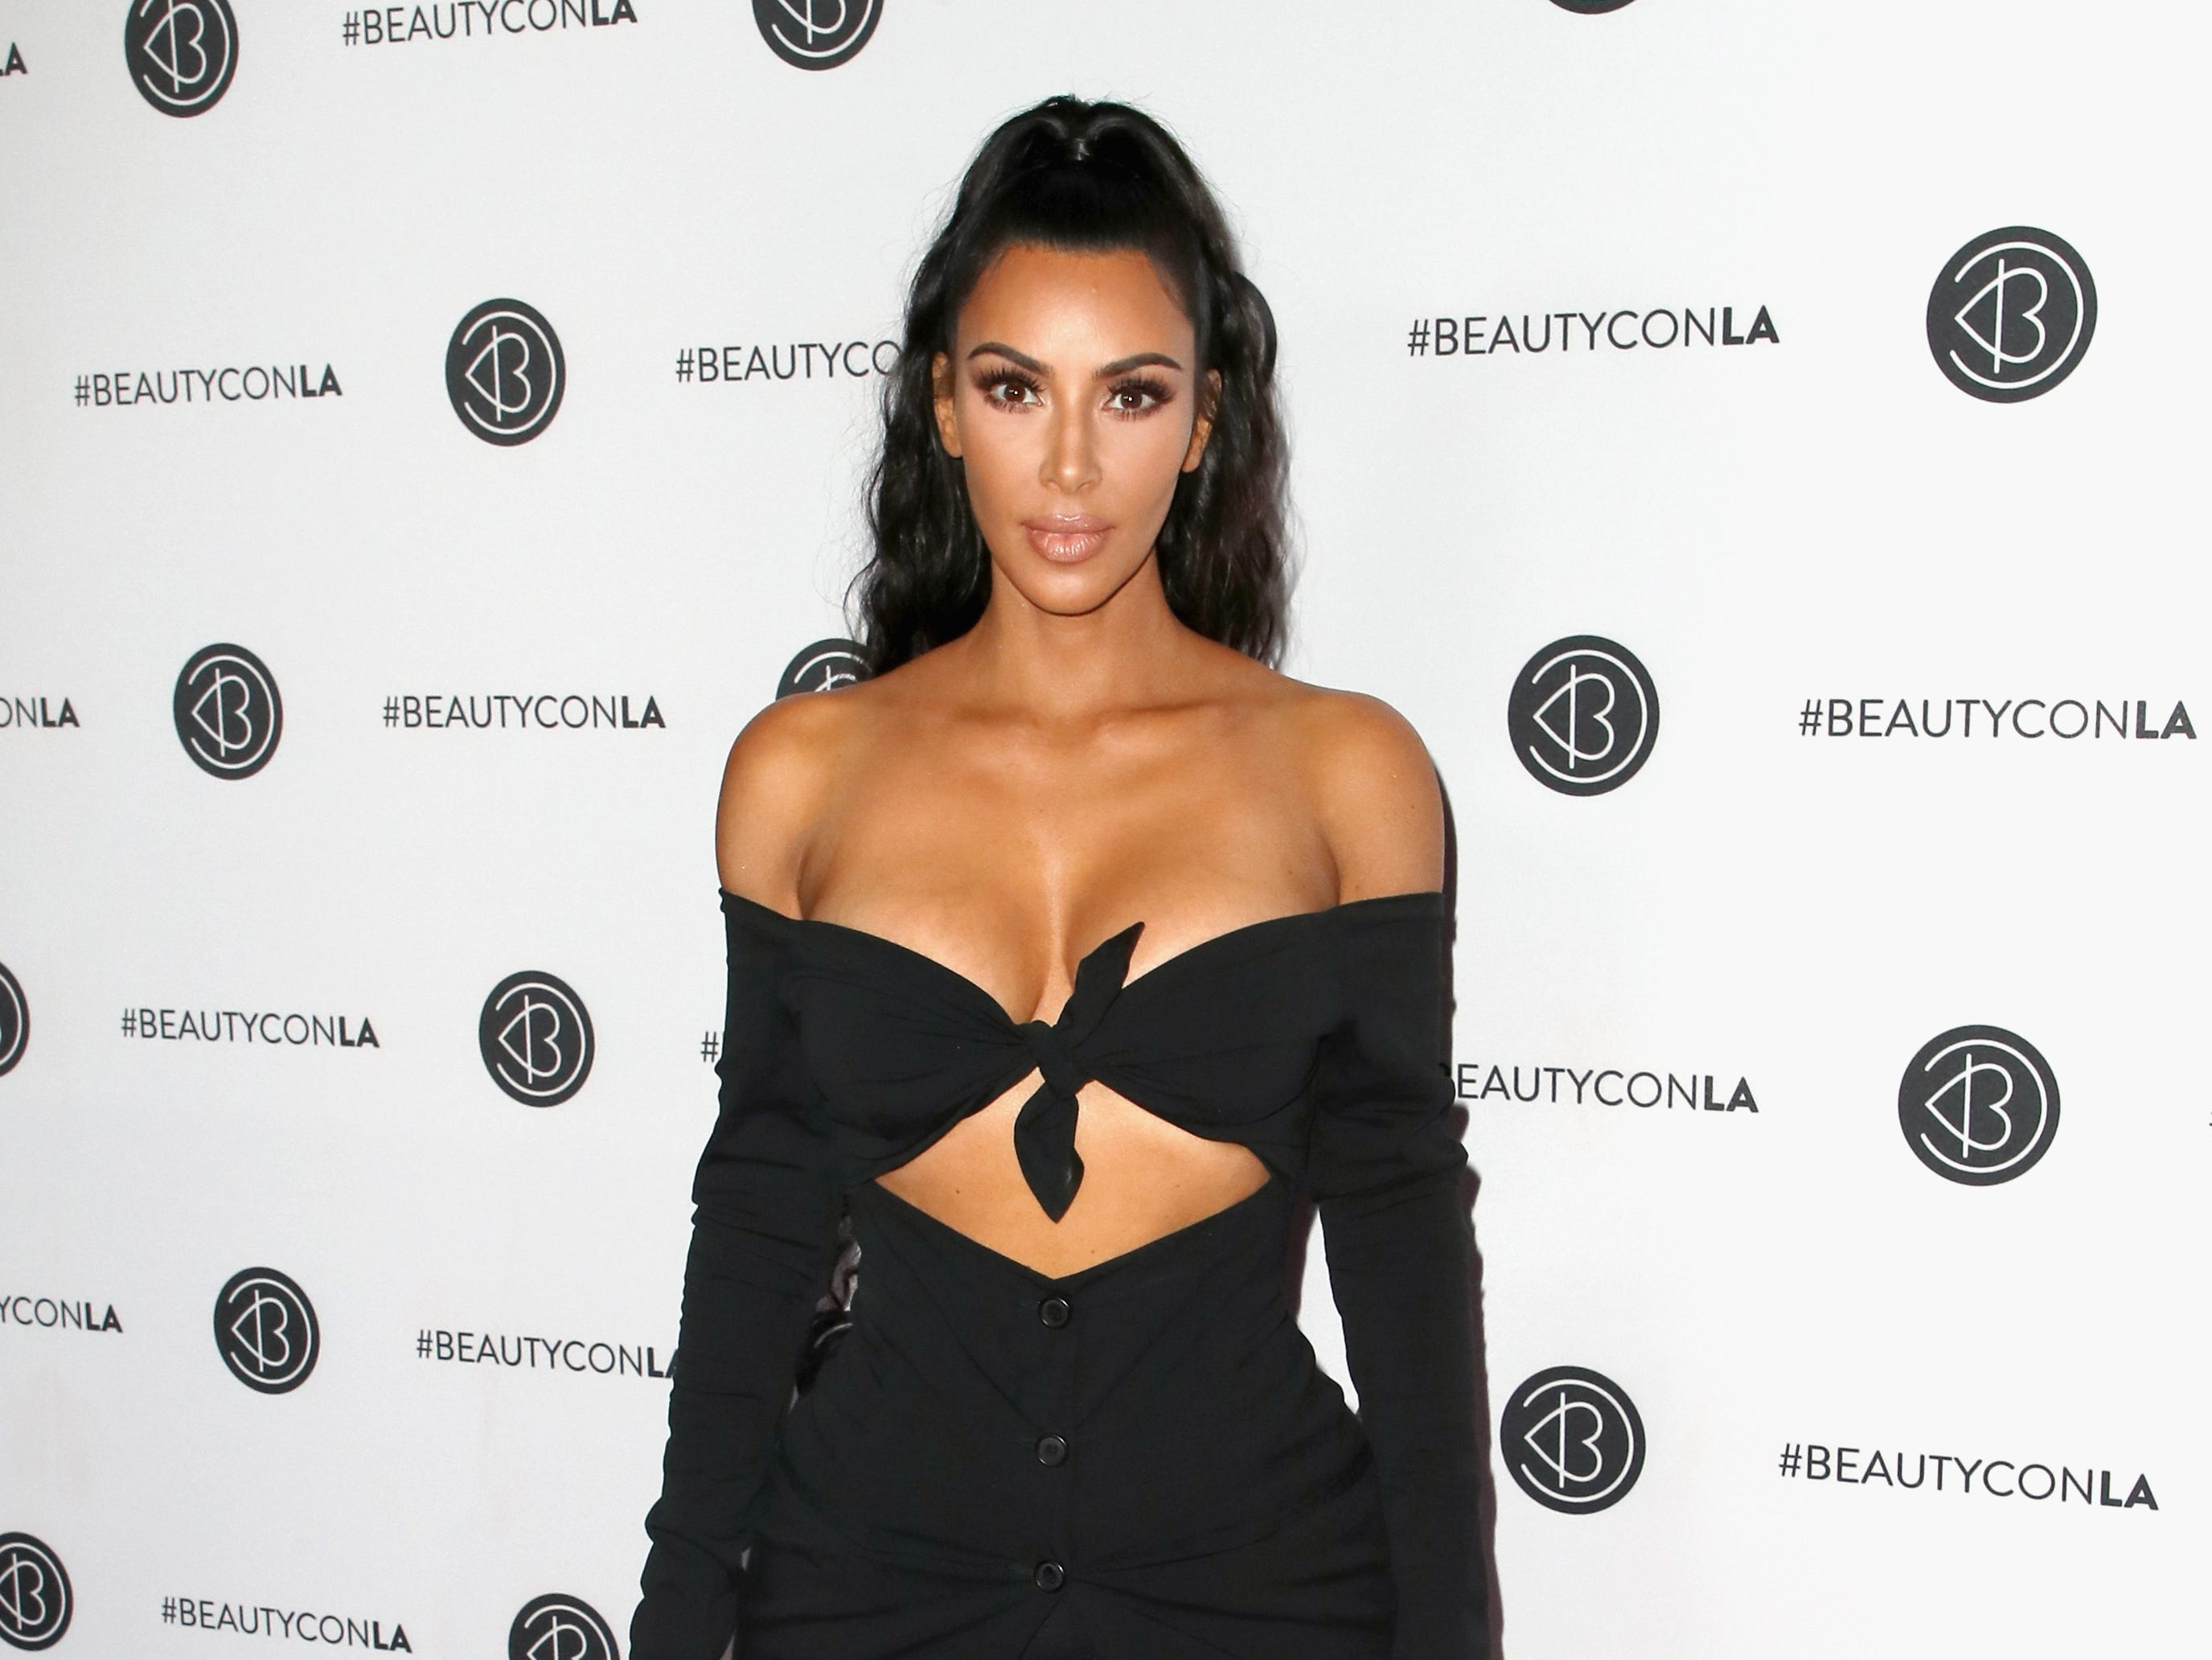 Kim Kardashian West wore a tie-up ensemble at the Beautycon Festival on July 15, 2018 in Los Angeles.